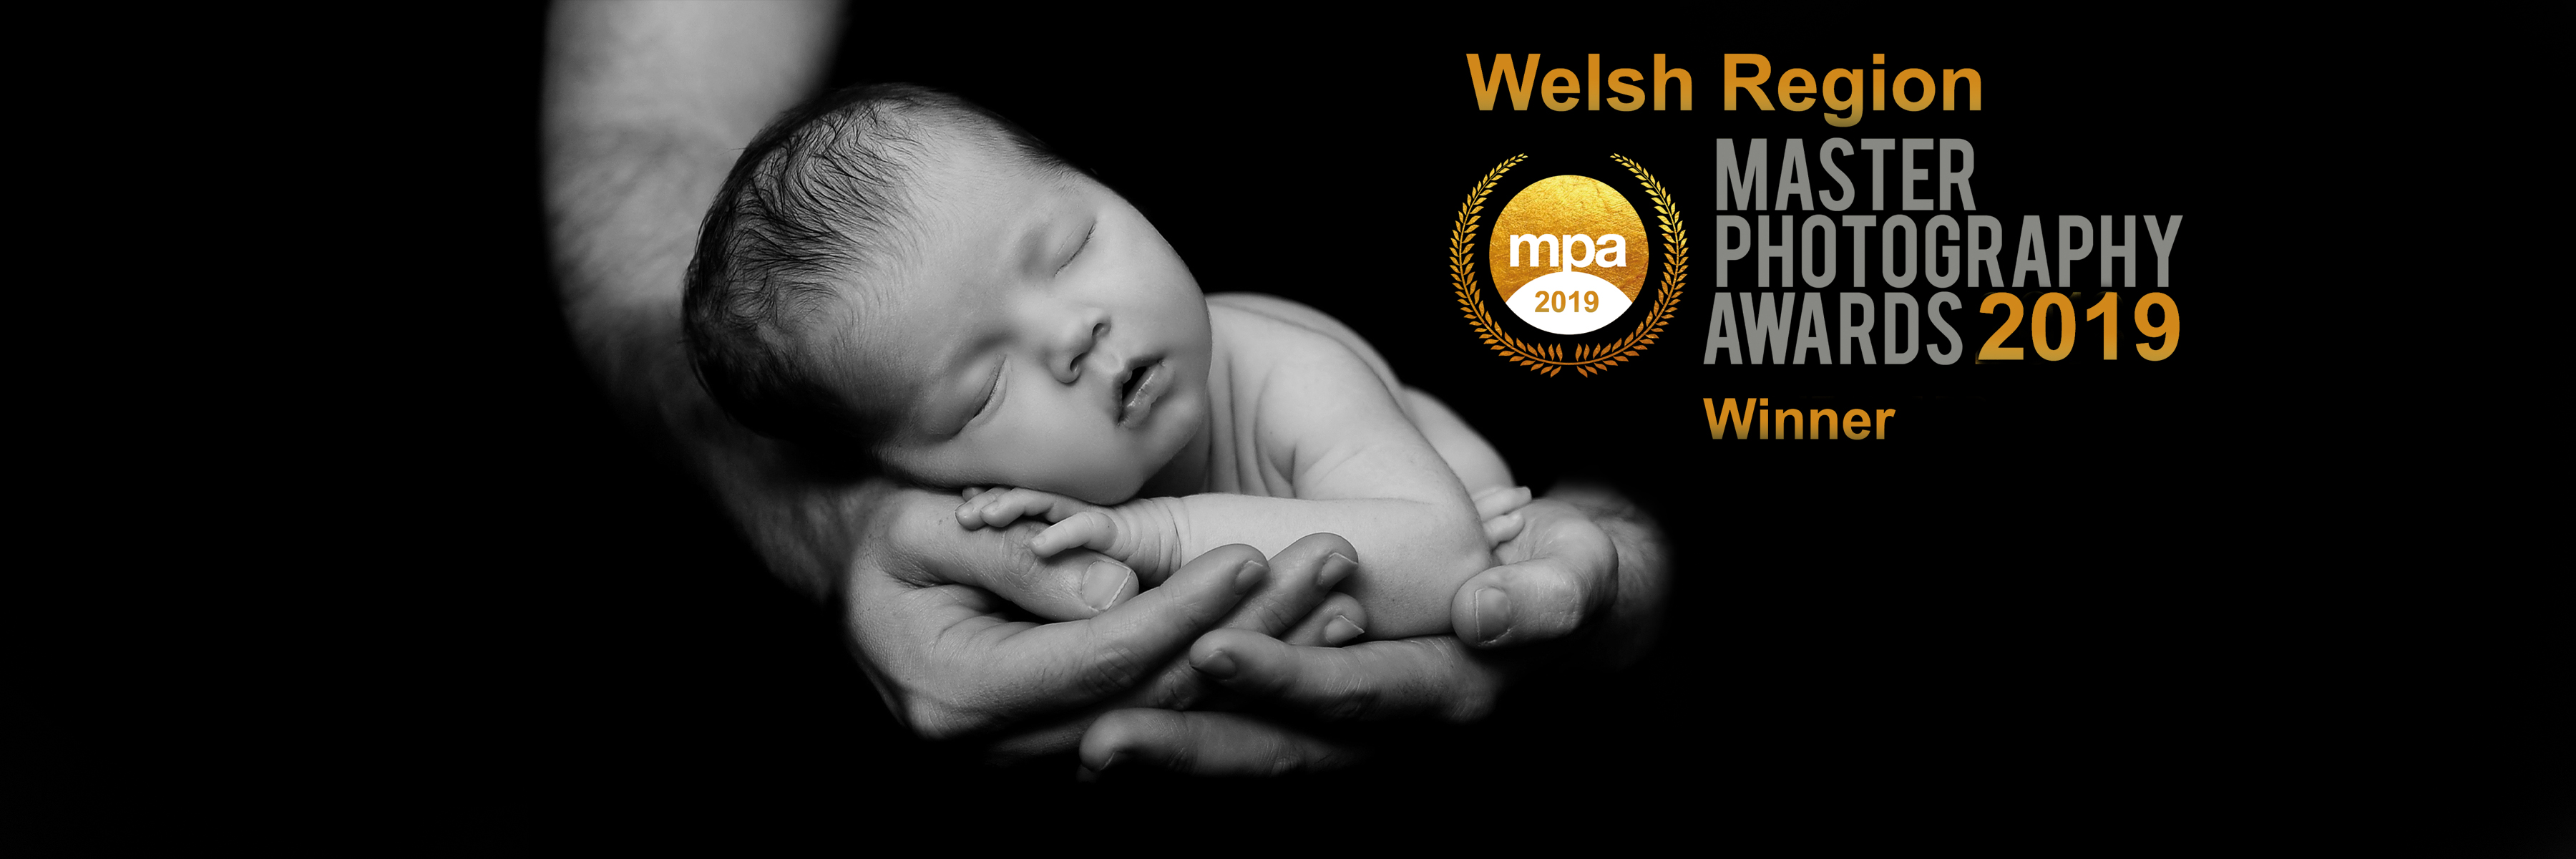 MPA welsh newborn photographer of the year Darren Whiteley